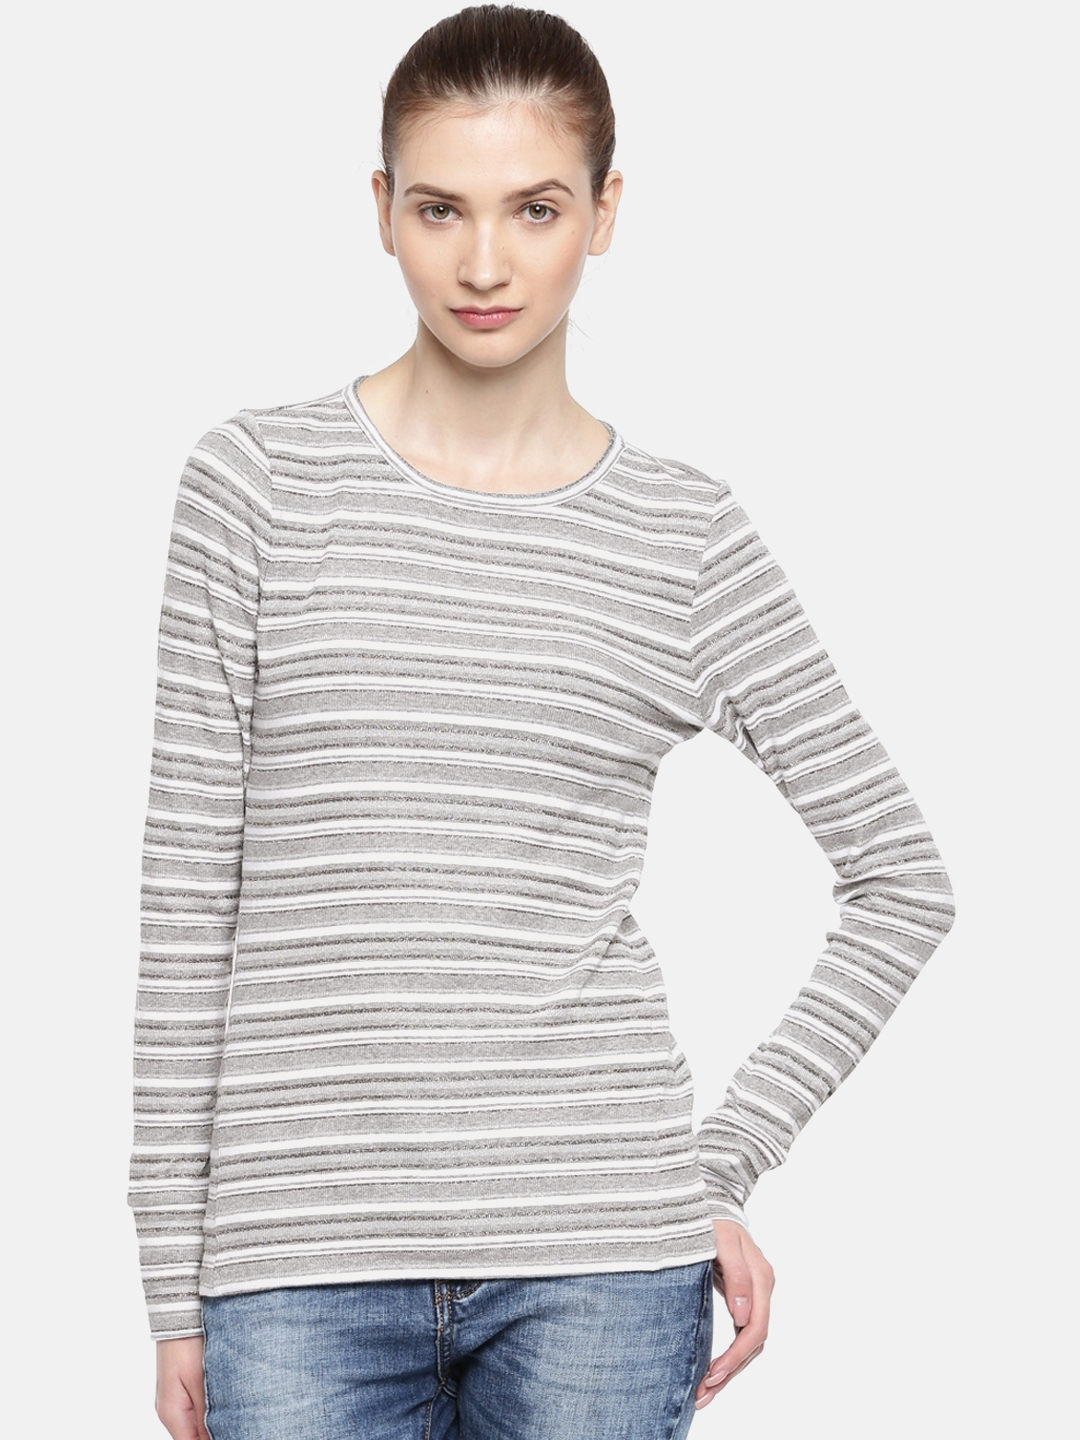 4ed70c31a8 Buy GAP Women Grey Striped Round Neck T Shirt - Tshirts for Women ...